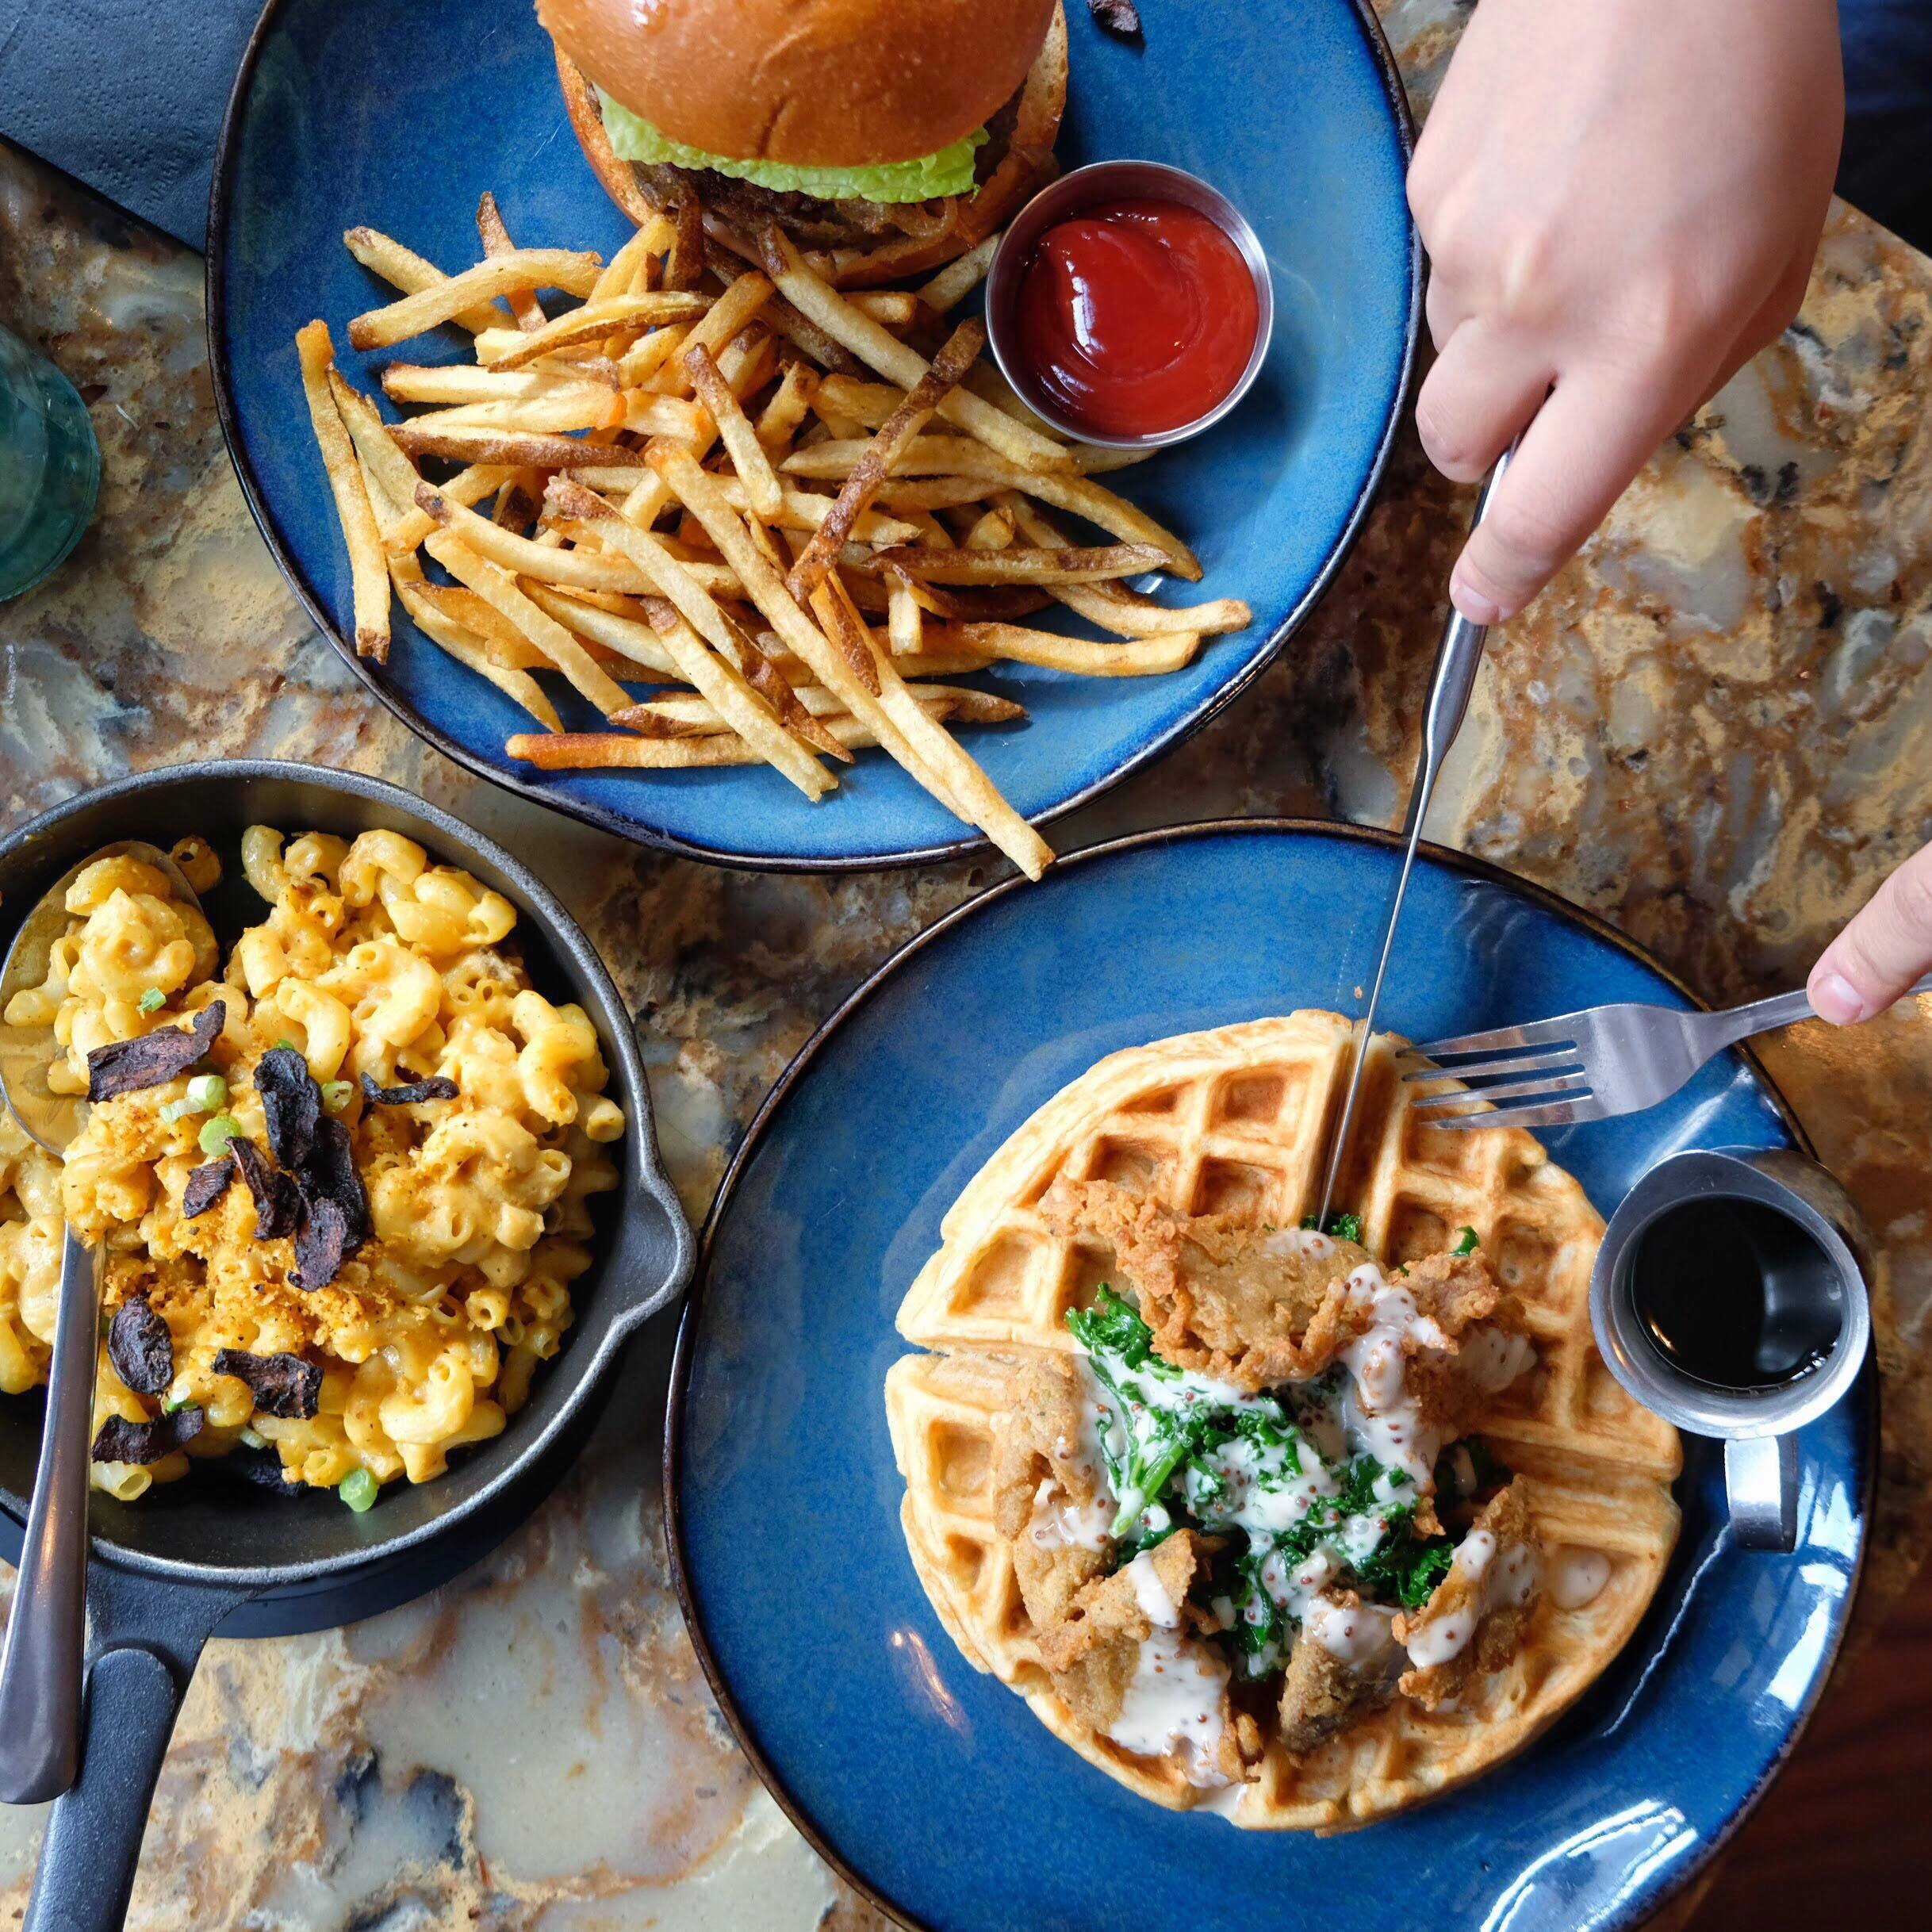 Left to Right: Mac n' Cheese, UVK Quarter Pounder, Chicken Un'Waffles